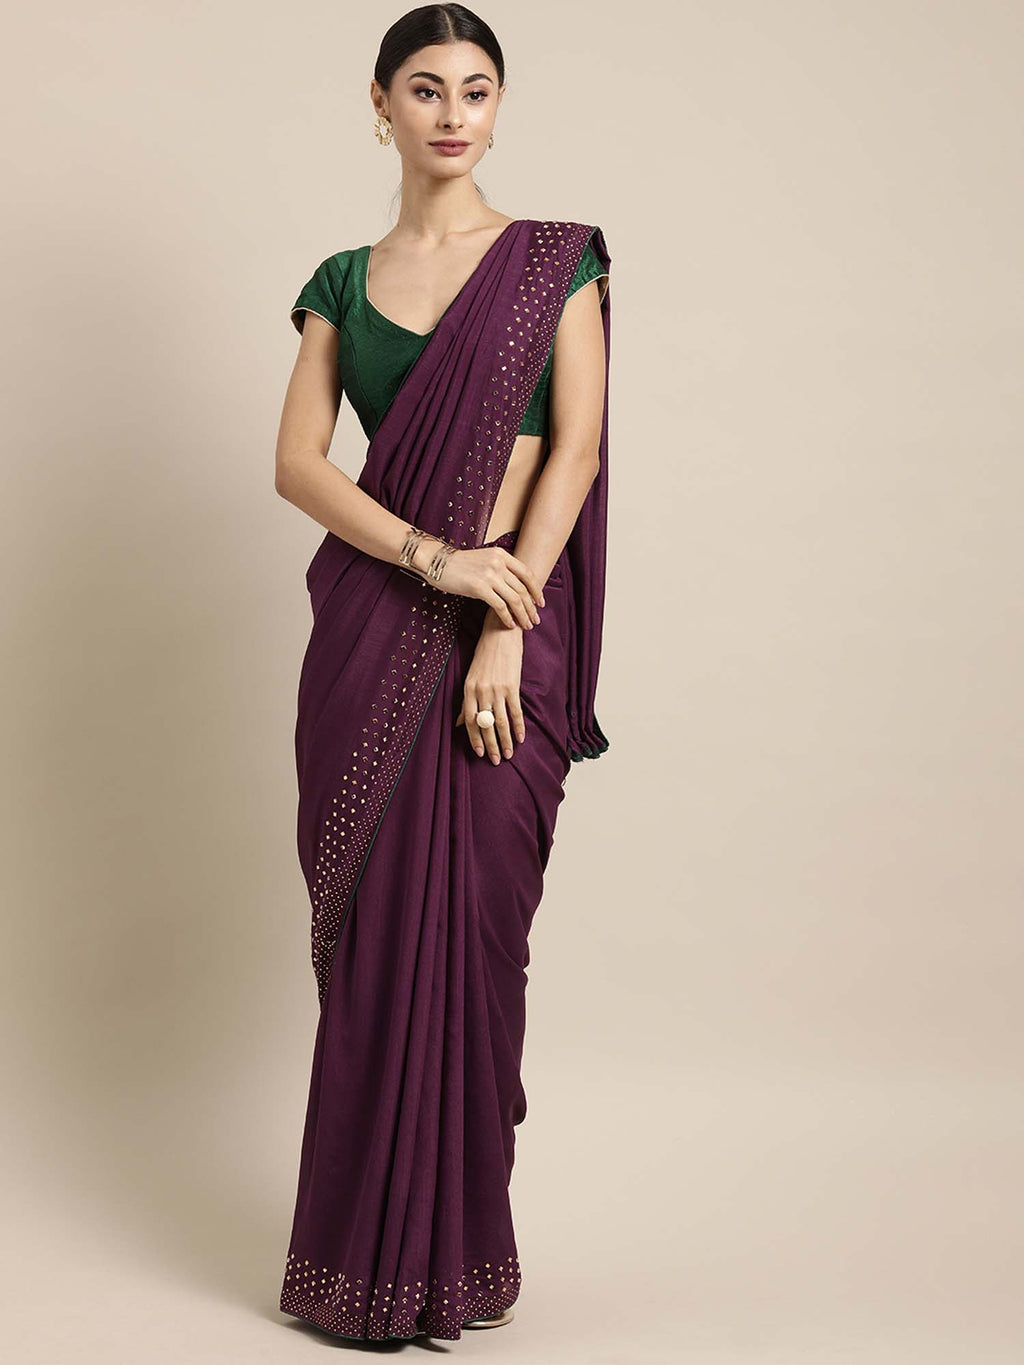 Magenta Color Poly Crepe Solid Saree With Swarovski Crystal as Decoratives and Green Polycotton Blouse - Riviera Closet